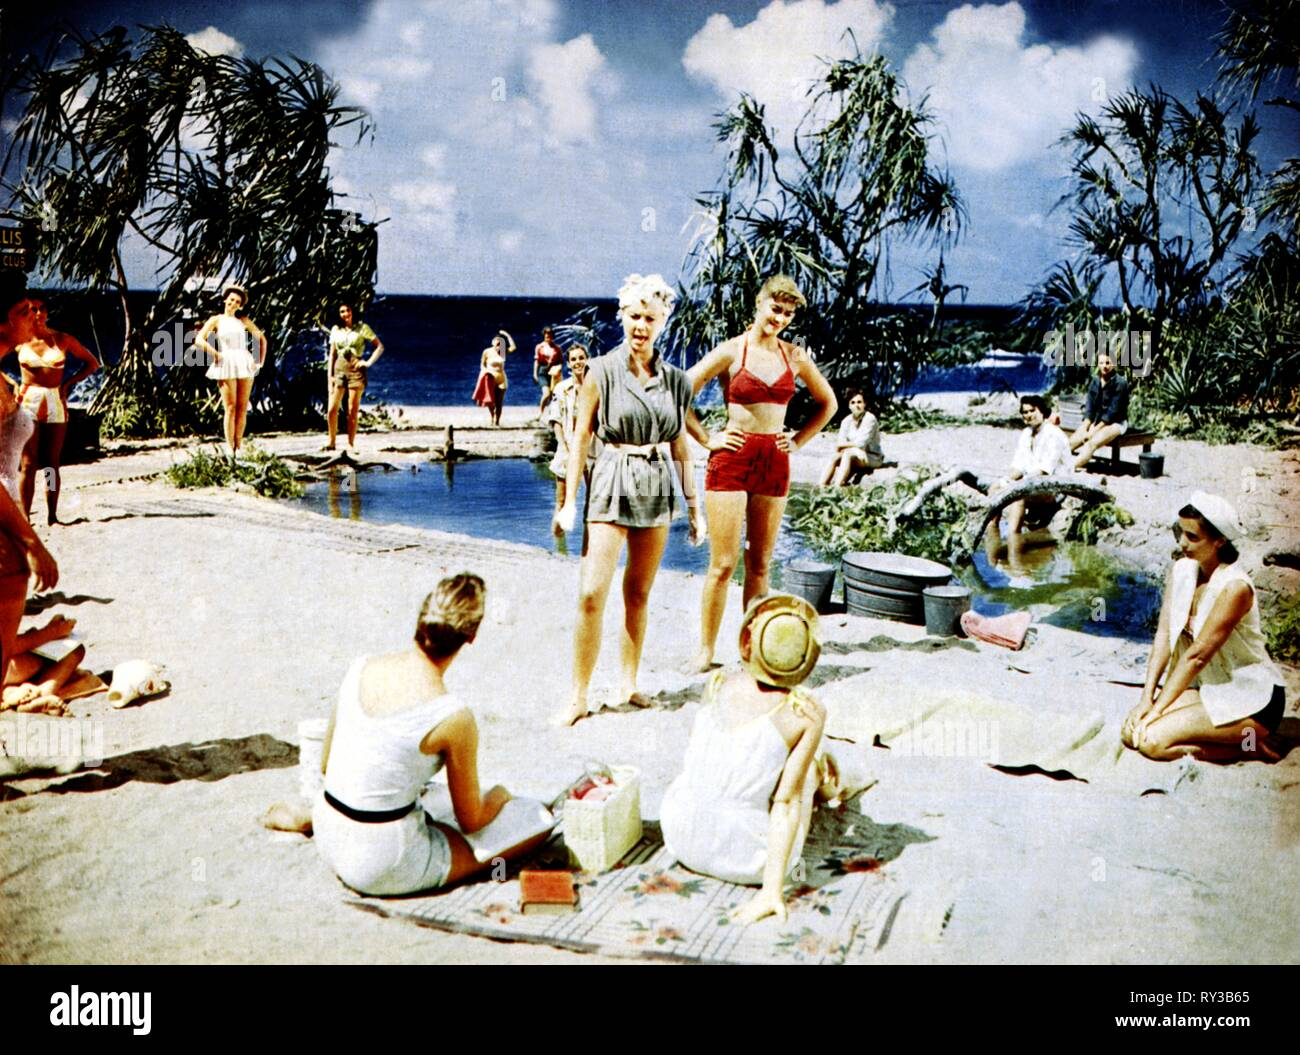 SCENE WITH MITZI GAYNOR, SOUTH PACIFIC, 1958 - Stock Image